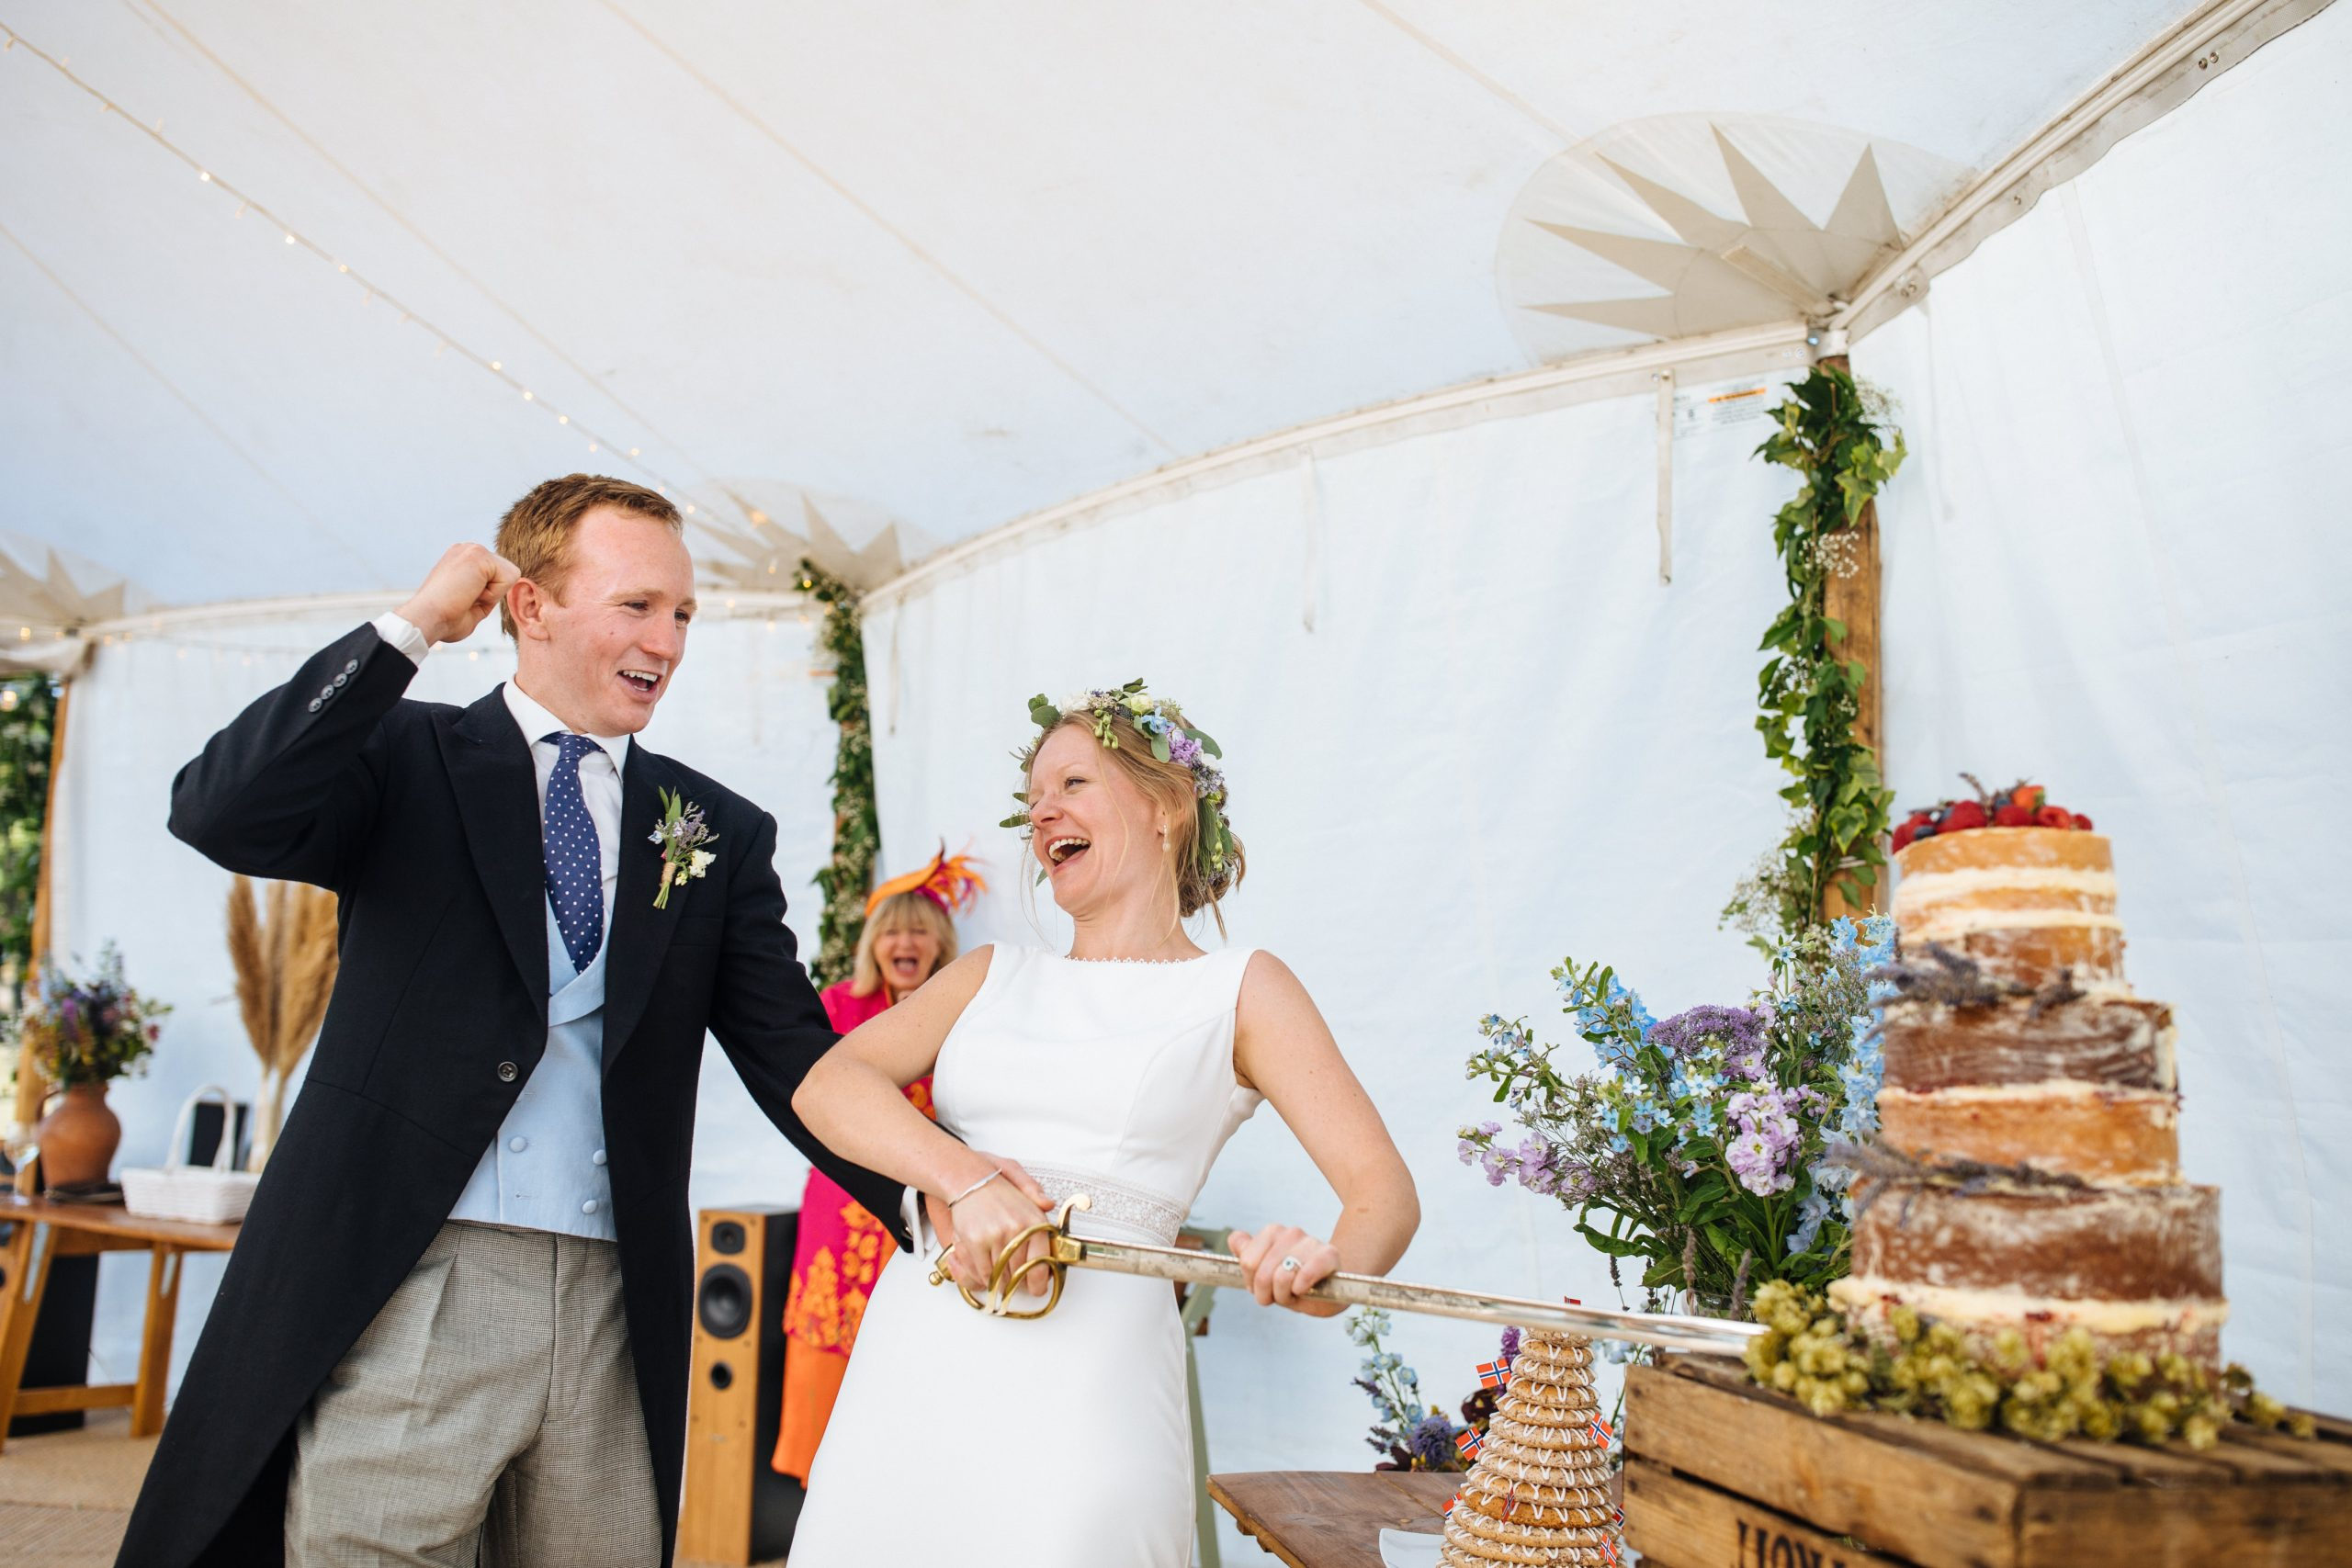 bride and groom cutting naked cake with sword and laughing